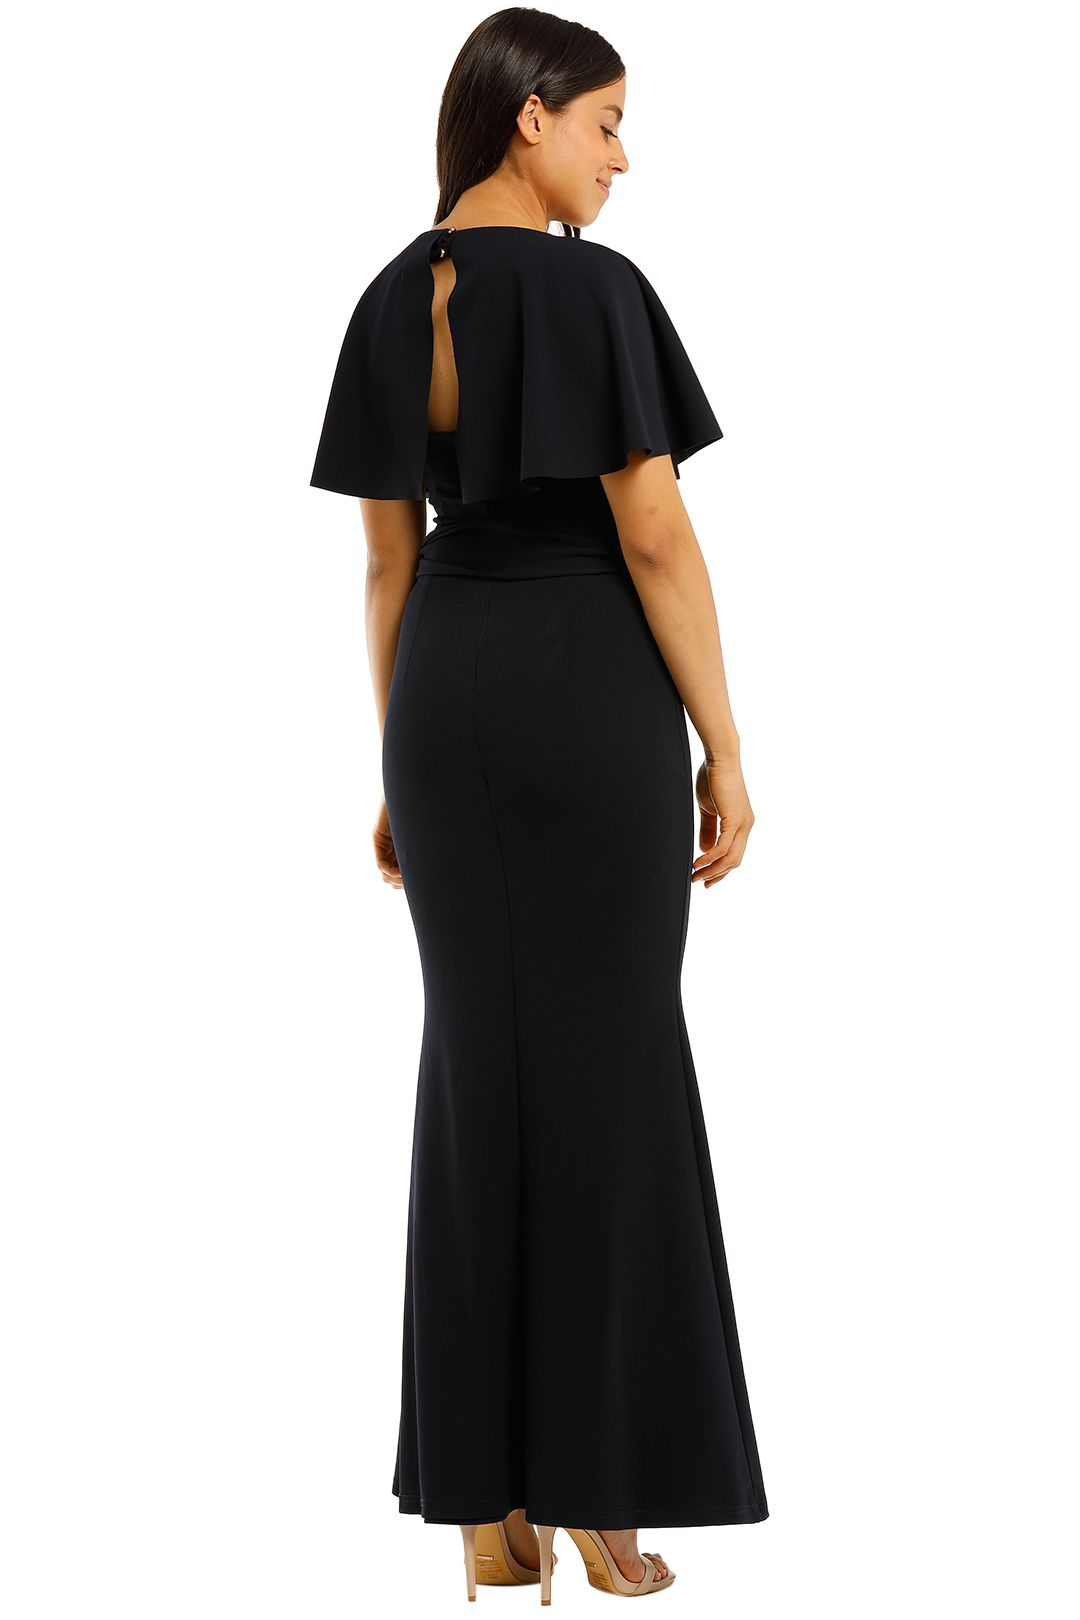 Pasduchas-Mrs-Carter-Gown-Navy-Back